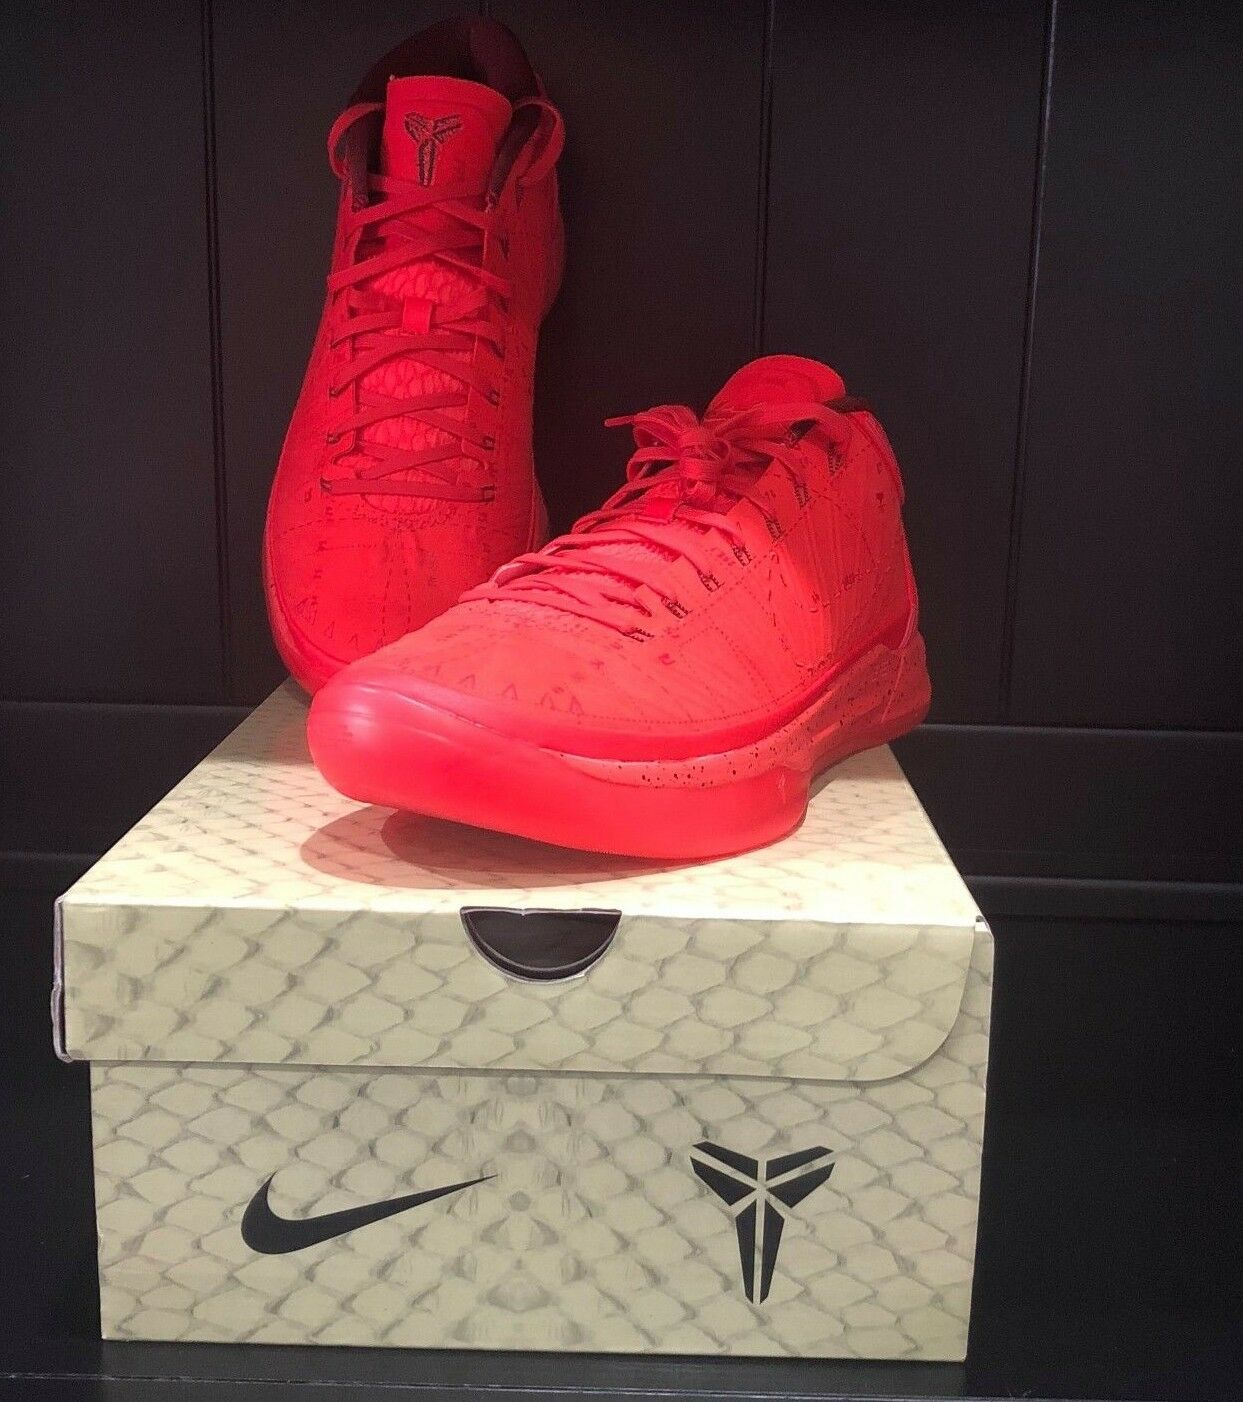 Nike Kobe A.D. Habablack Red Black Passion 922482 600 Mamba Mentality Men's Sizes